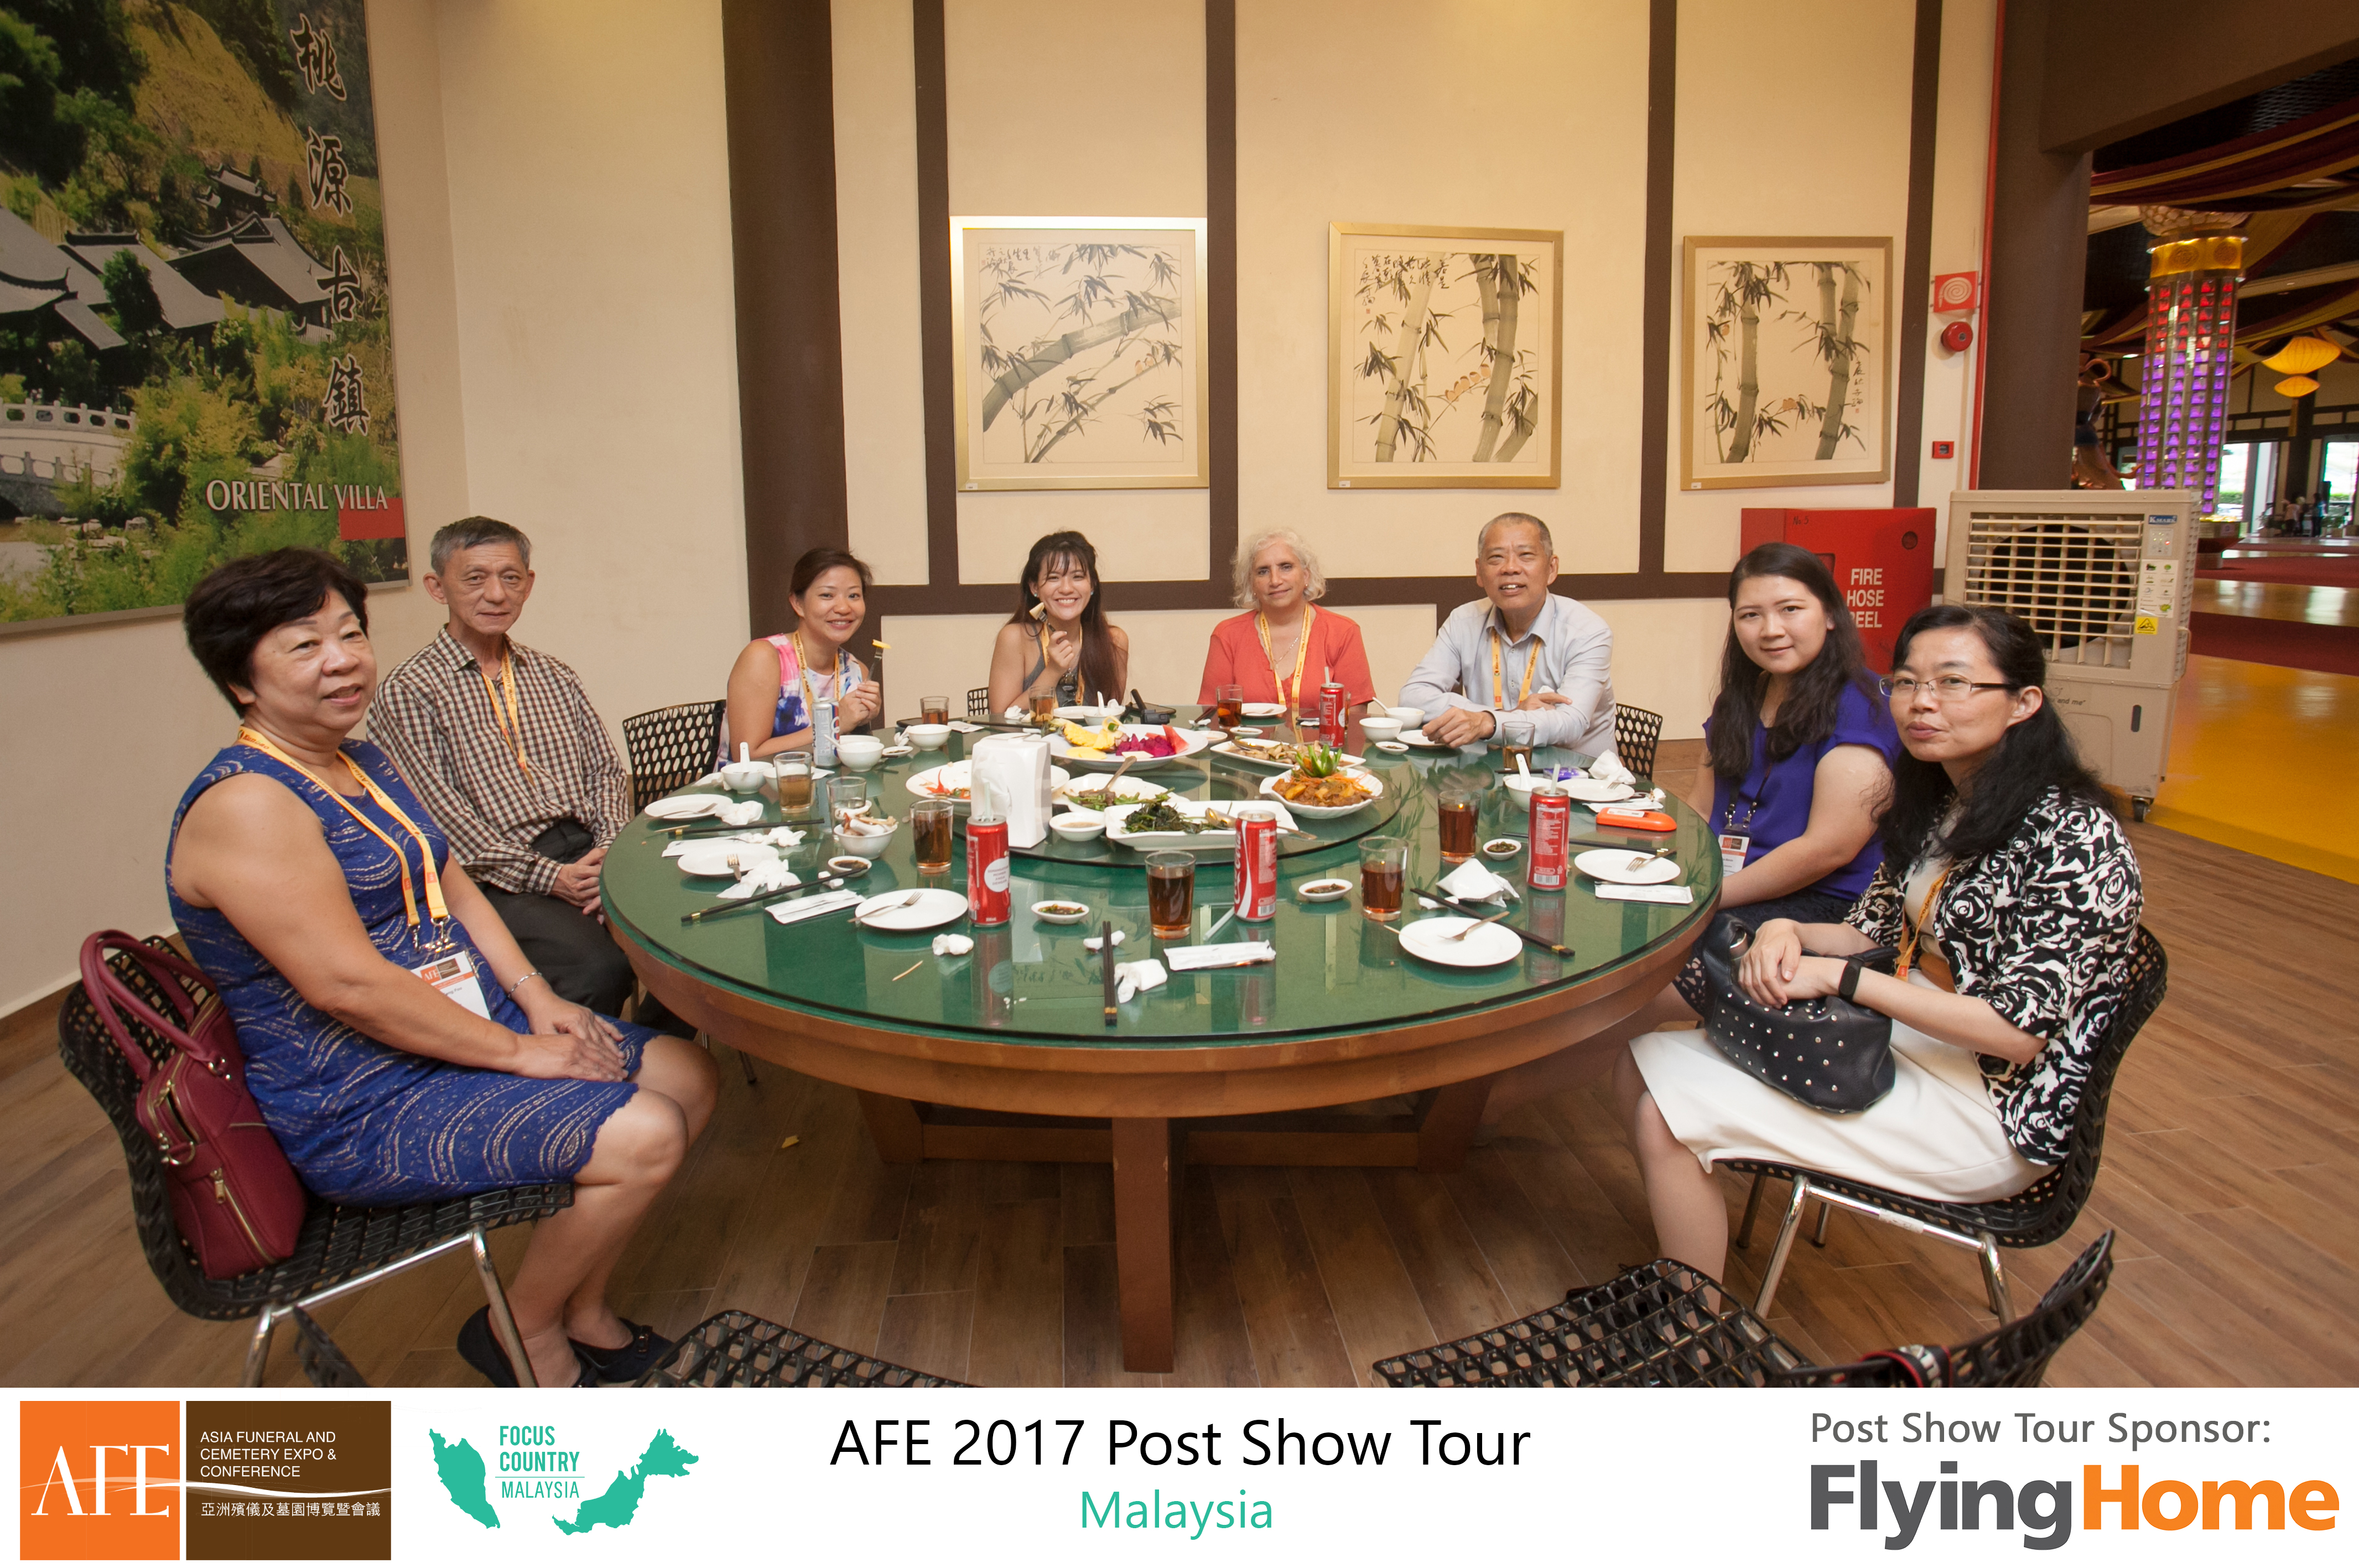 AFE Post Show Tour 2017 Day 2 - 13